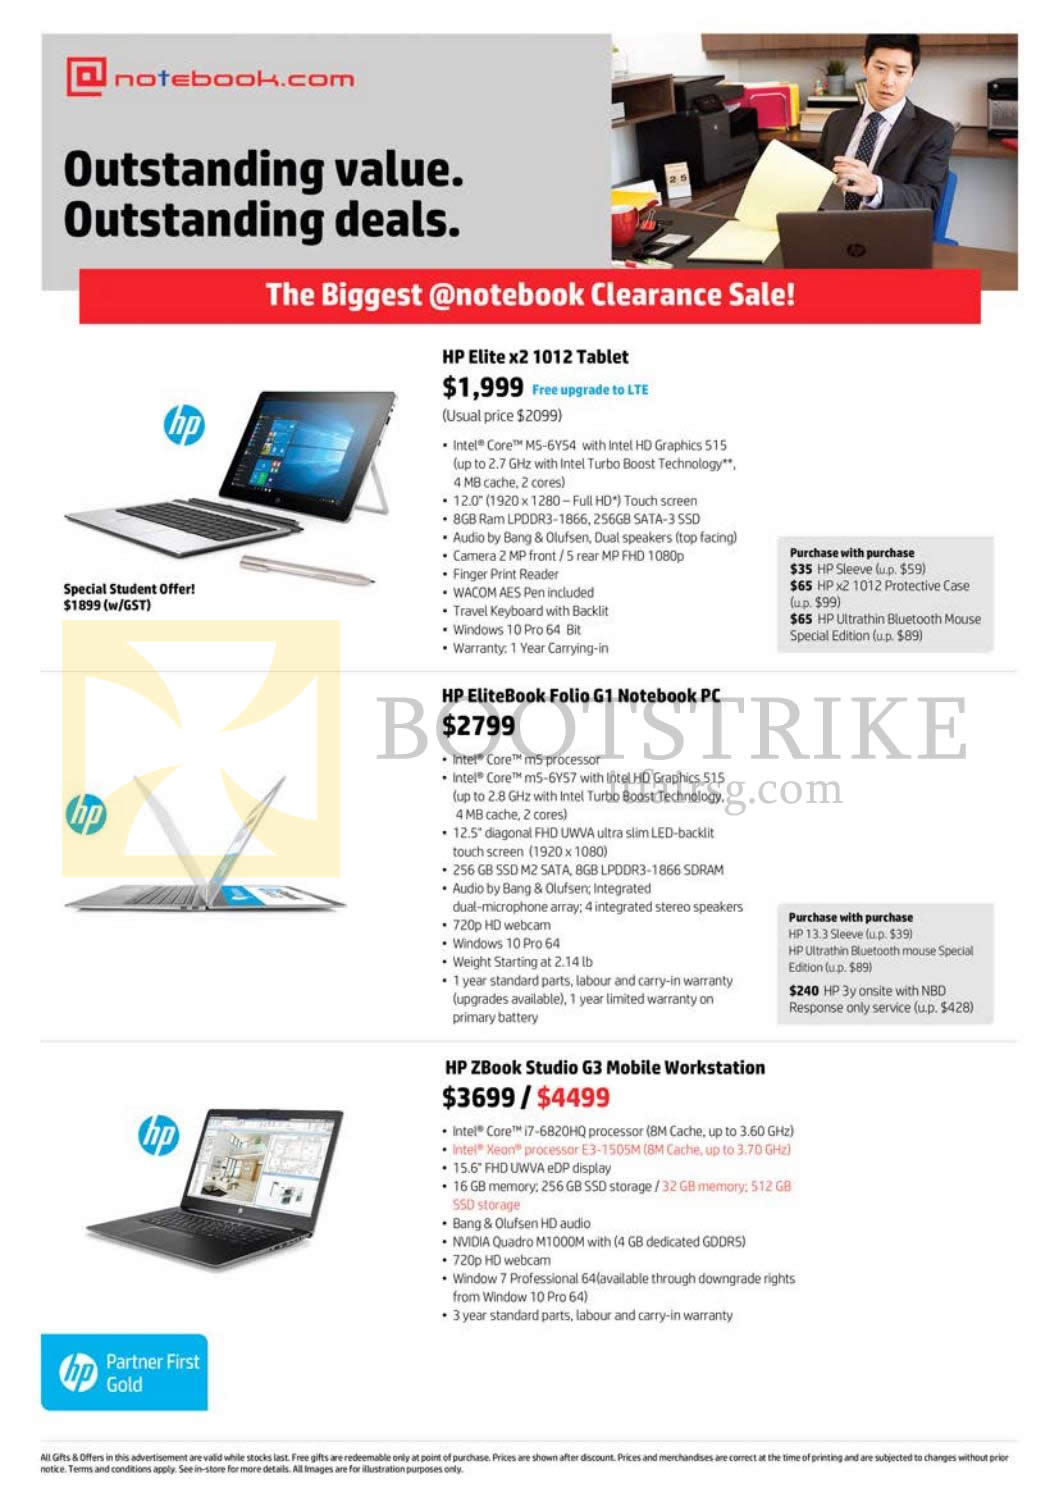 COMEX 2016 price list image brochure of Newstead Notebook.com HP Notebooks Elite X2 1012 Tablet, Elitebook Folio G1 Notebook, ZBook Studio G3 Mobile Workstation